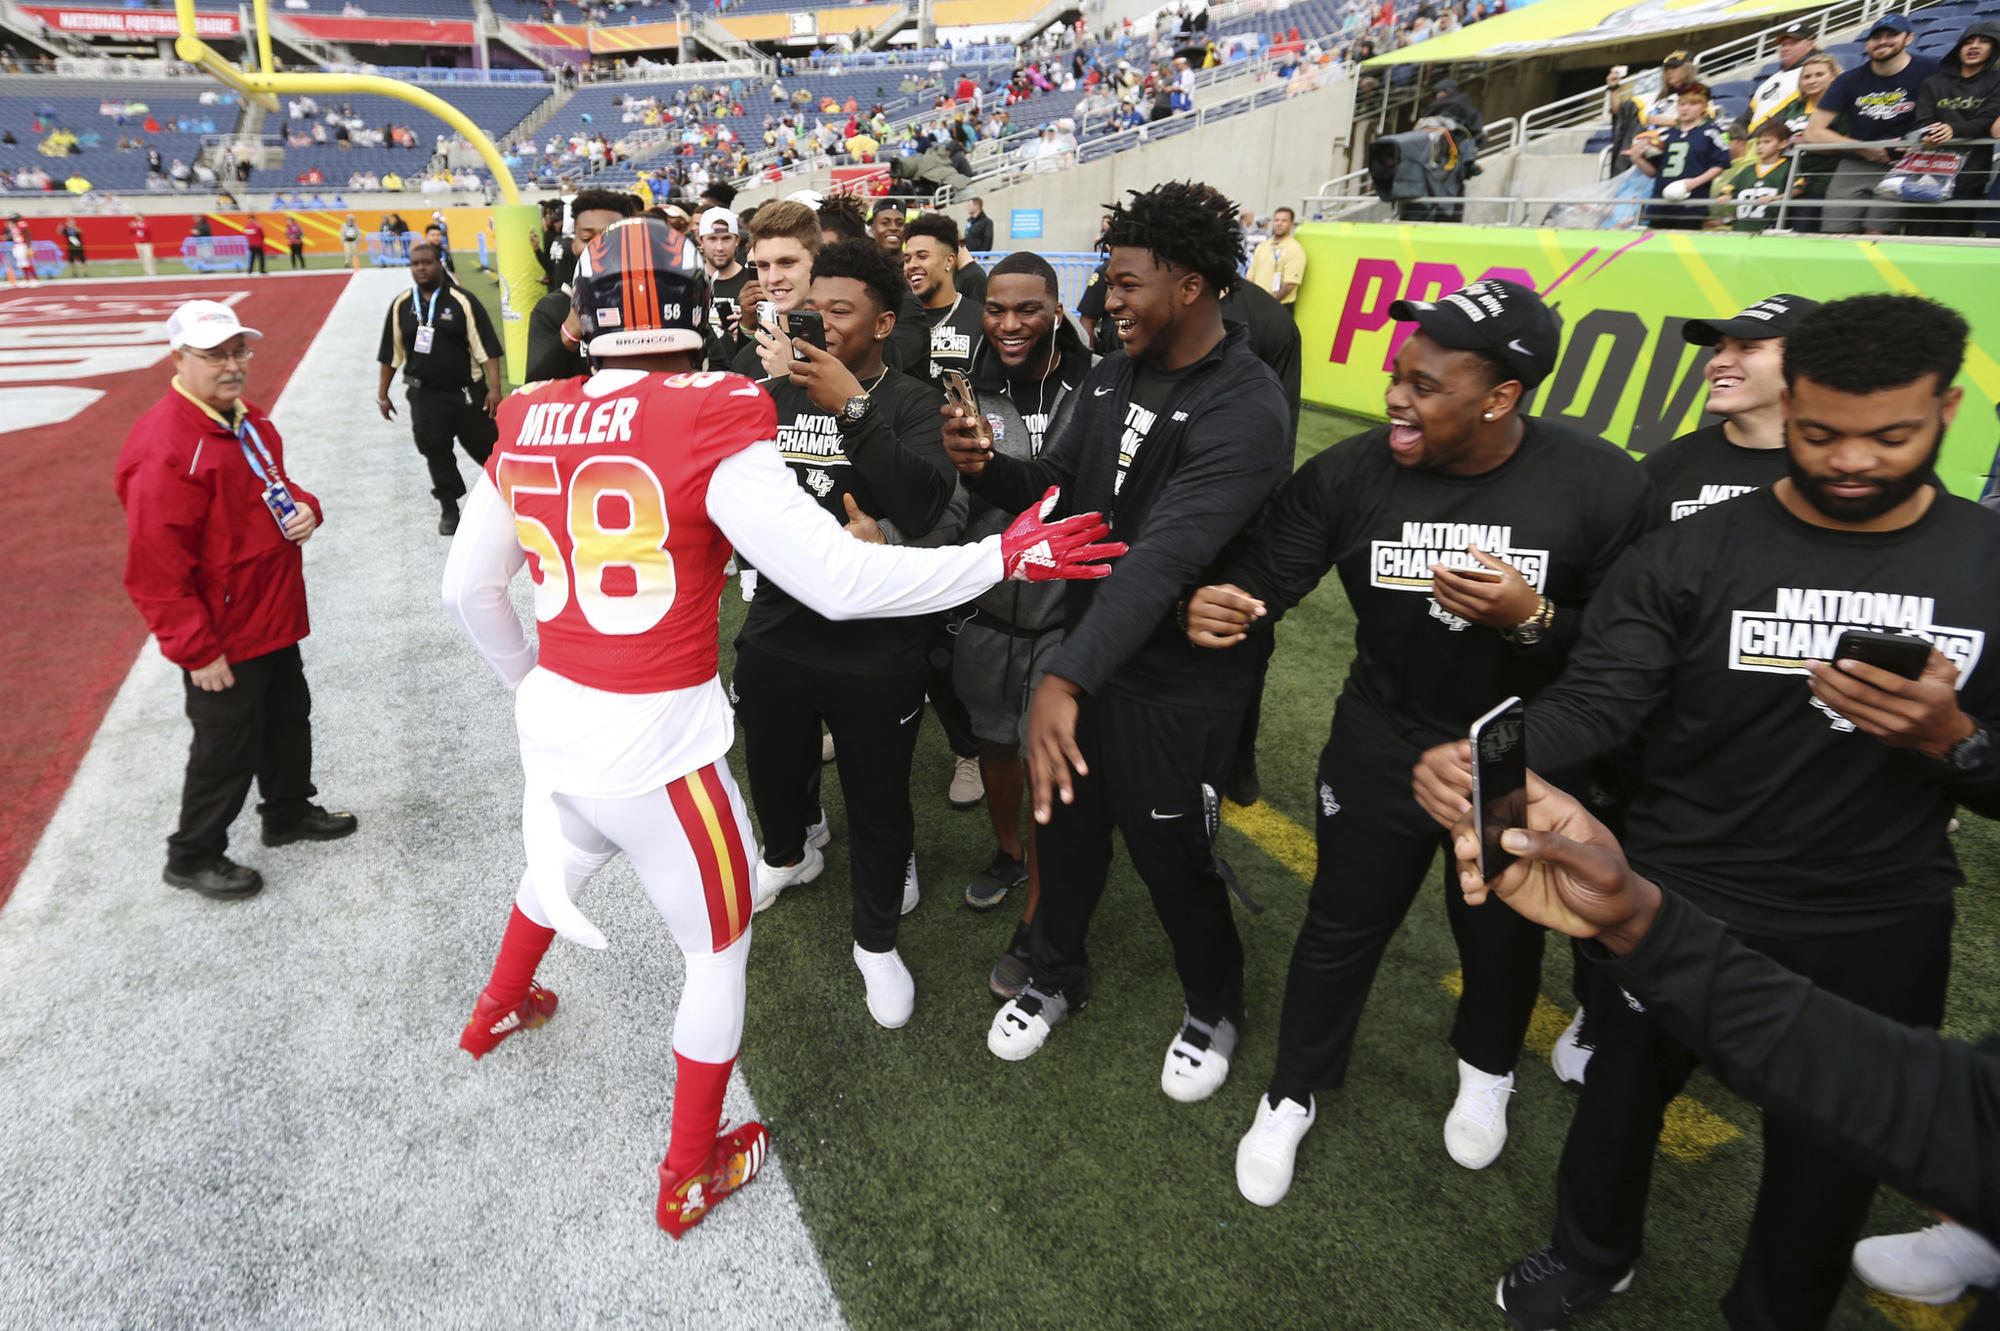 The undefeated UCF football team continued its magical victory tour Sunday  at the Pro Bowl at Camping World Stadium. The Knights 6c8f2295d